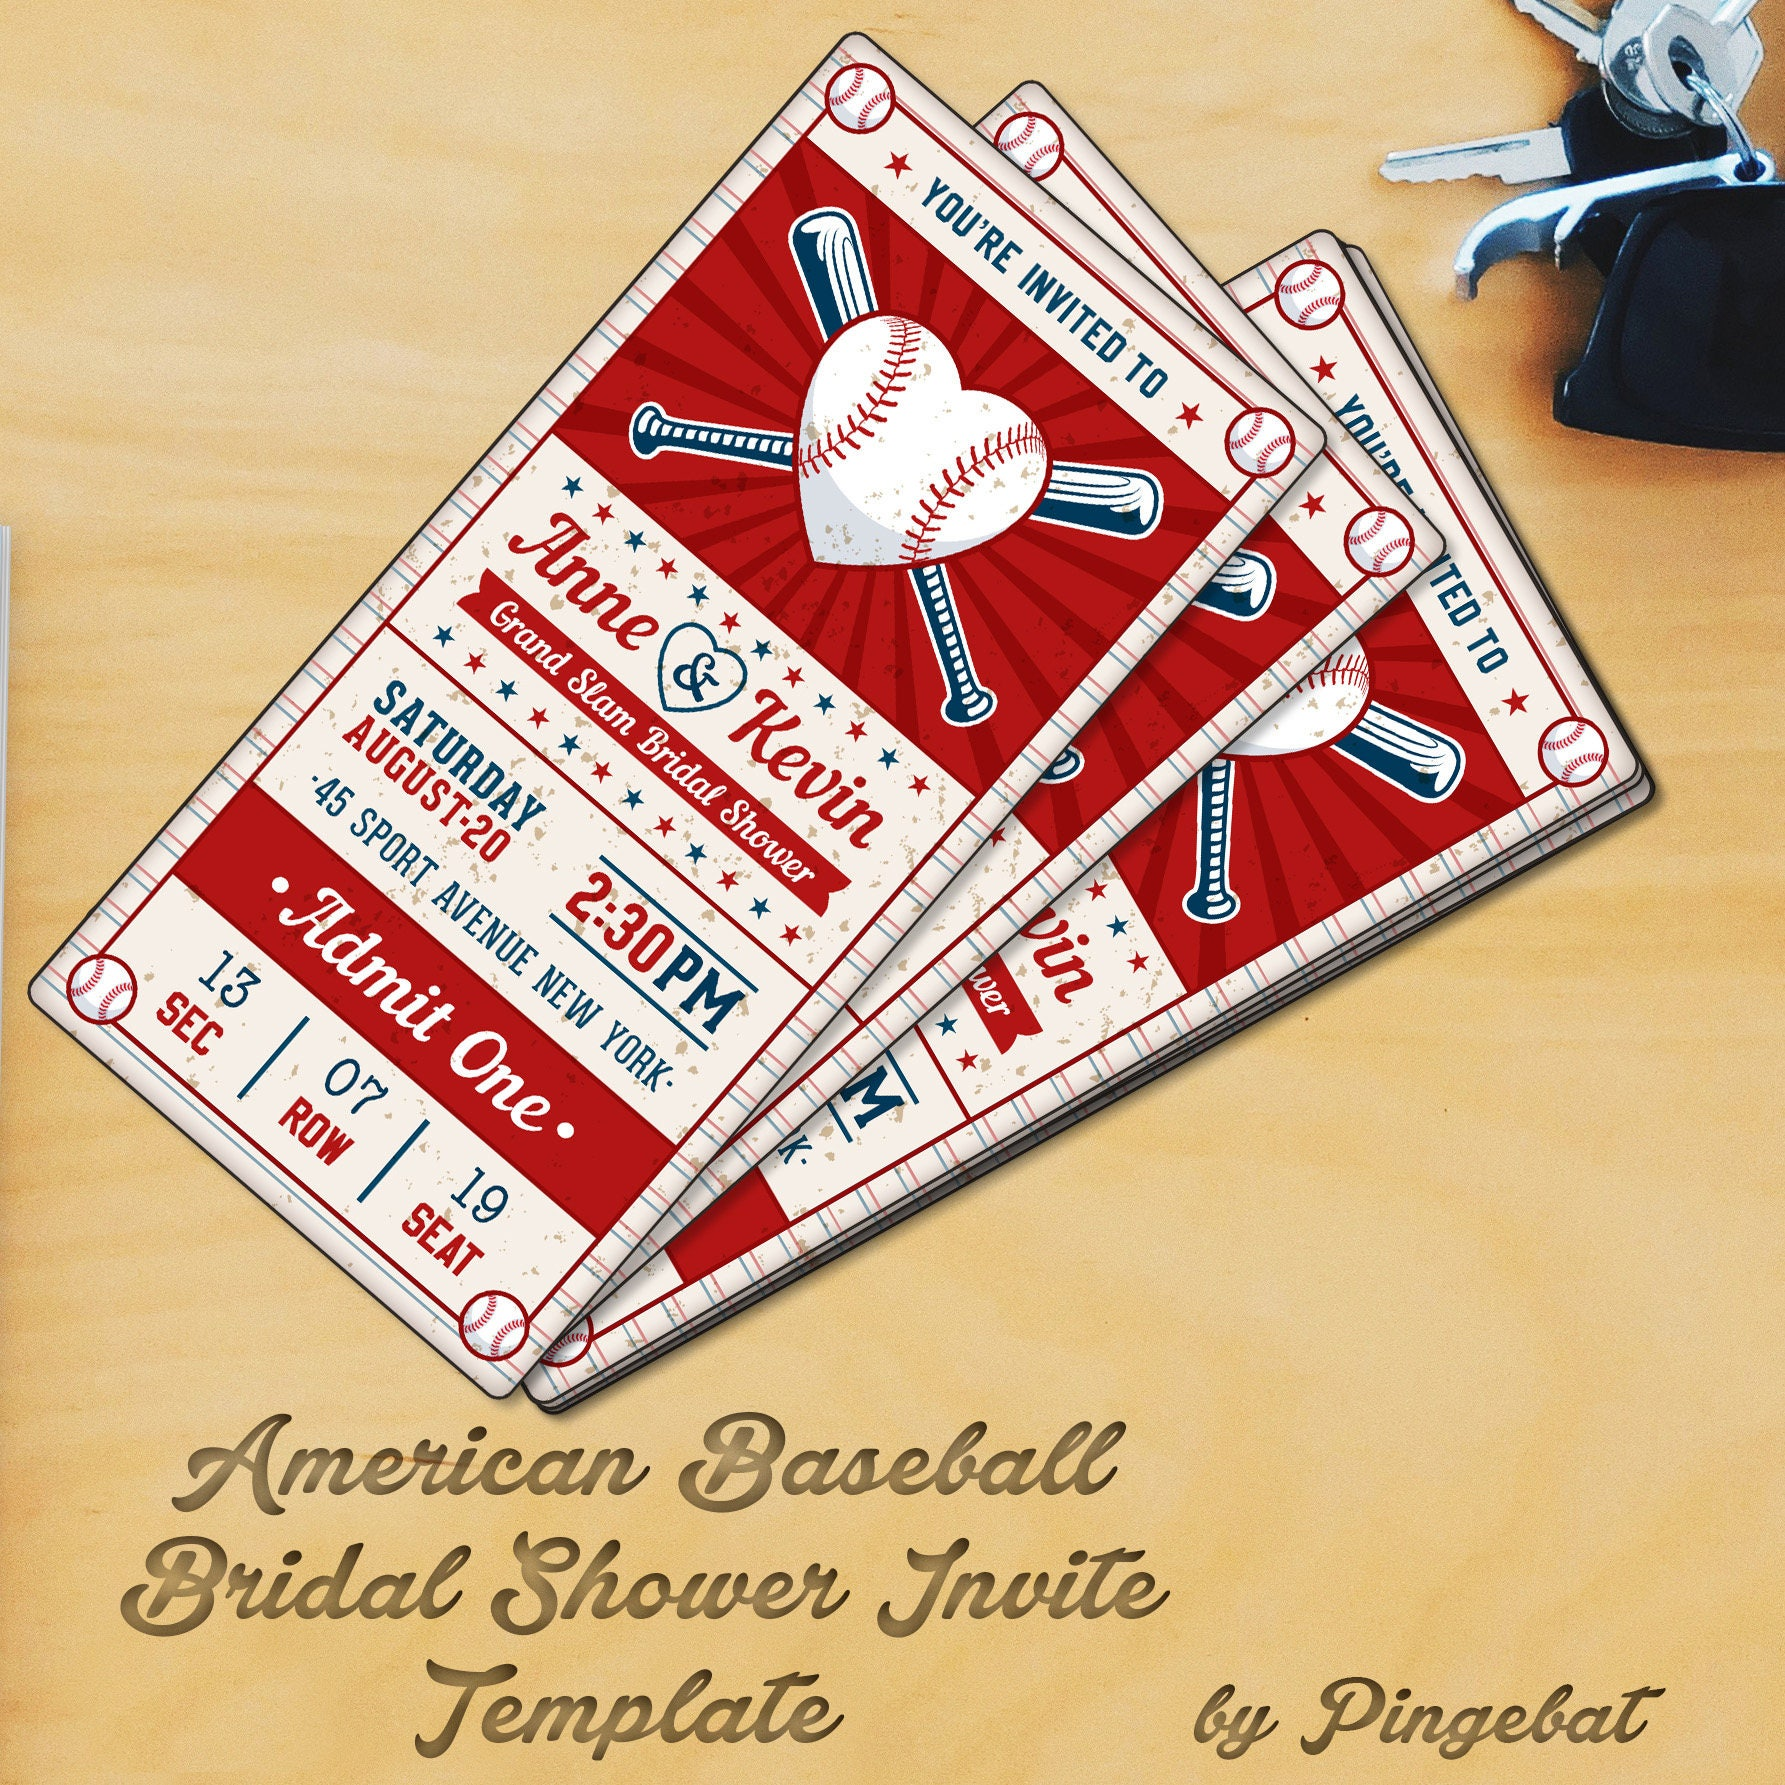 baseball bridal sower vertical invitation templates jpg 1785x1785 baseball bridal shower invitations